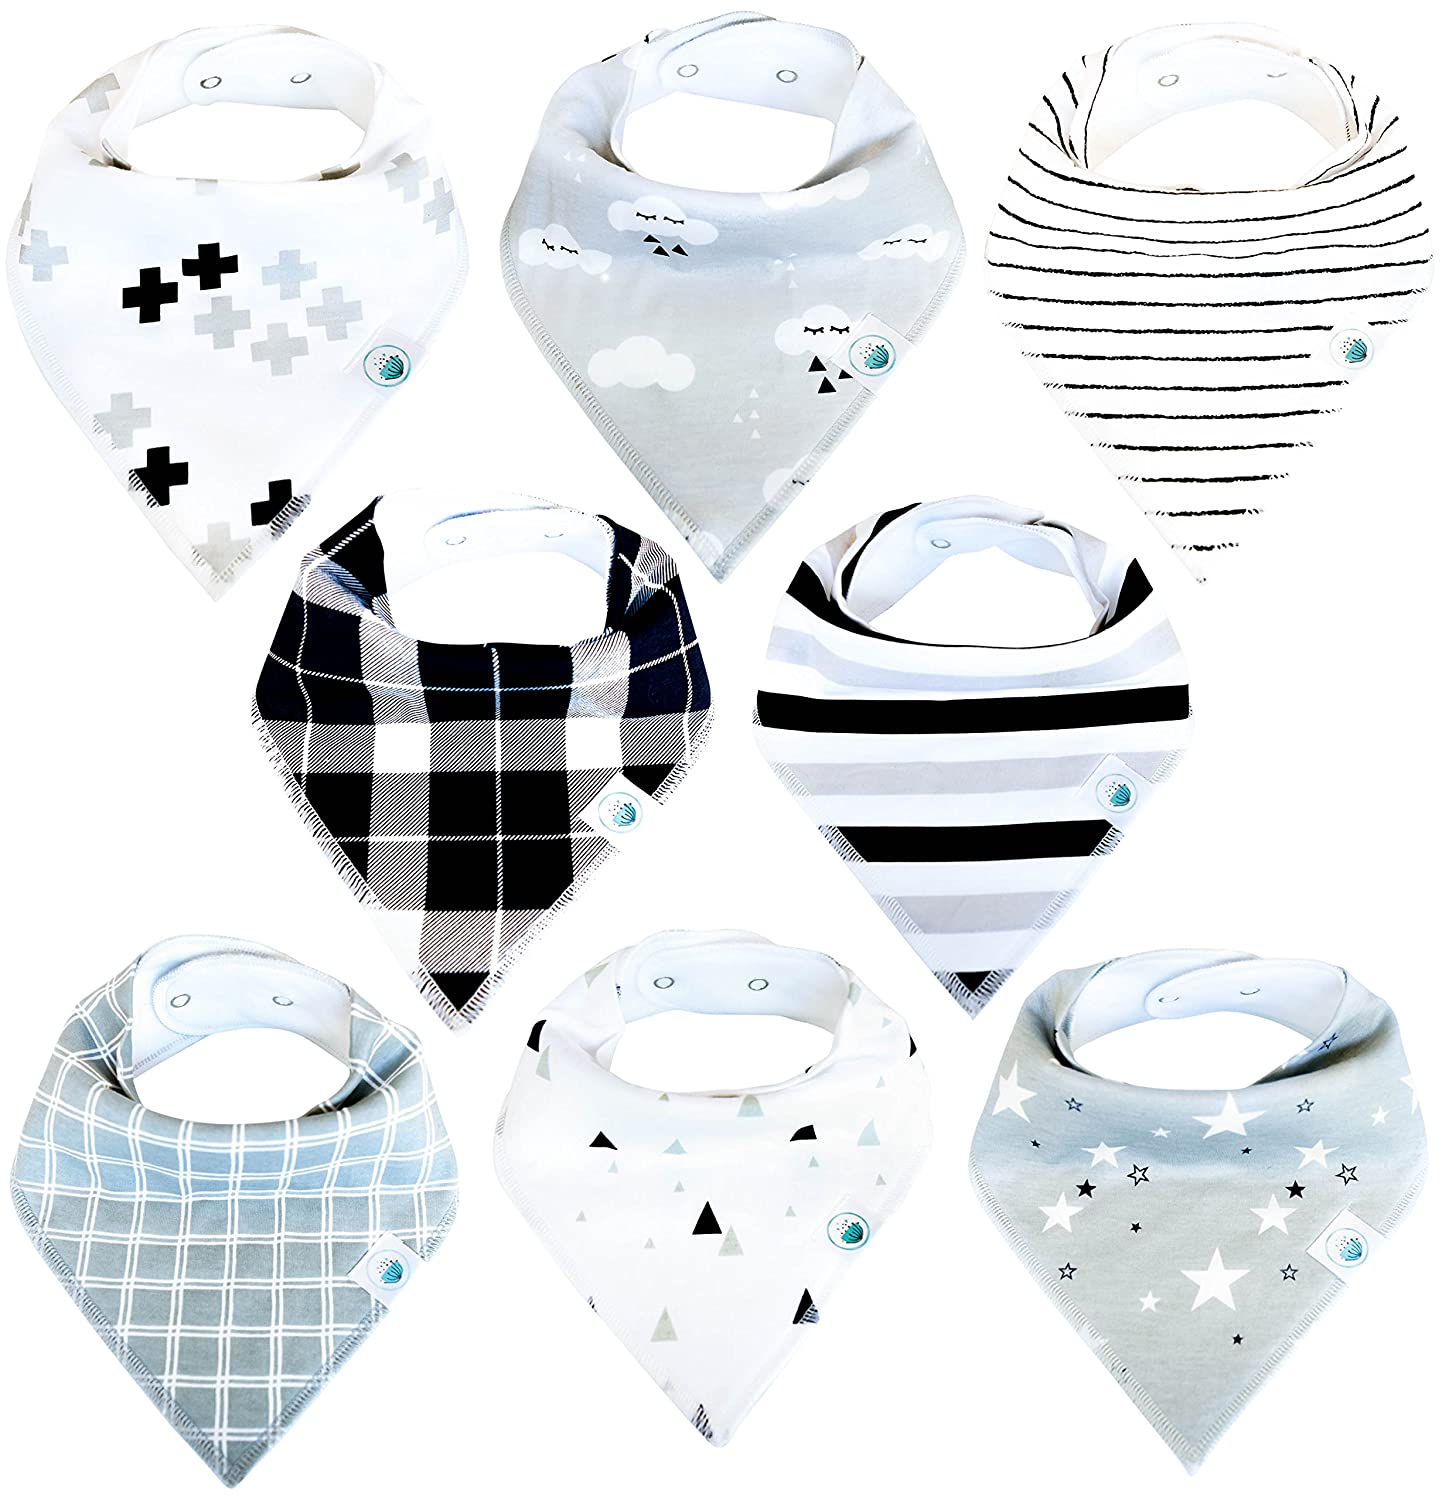 Baby Bandana Drool Bibs for Boys and Girls, 8-Pack Hypoallergenic Absorbent Organic Cotton with Snaps Teething Drooling, Unisex Baby Shower Gift, Newborn Registry Must Haves (Black White Monochrome) Lil Dandelion